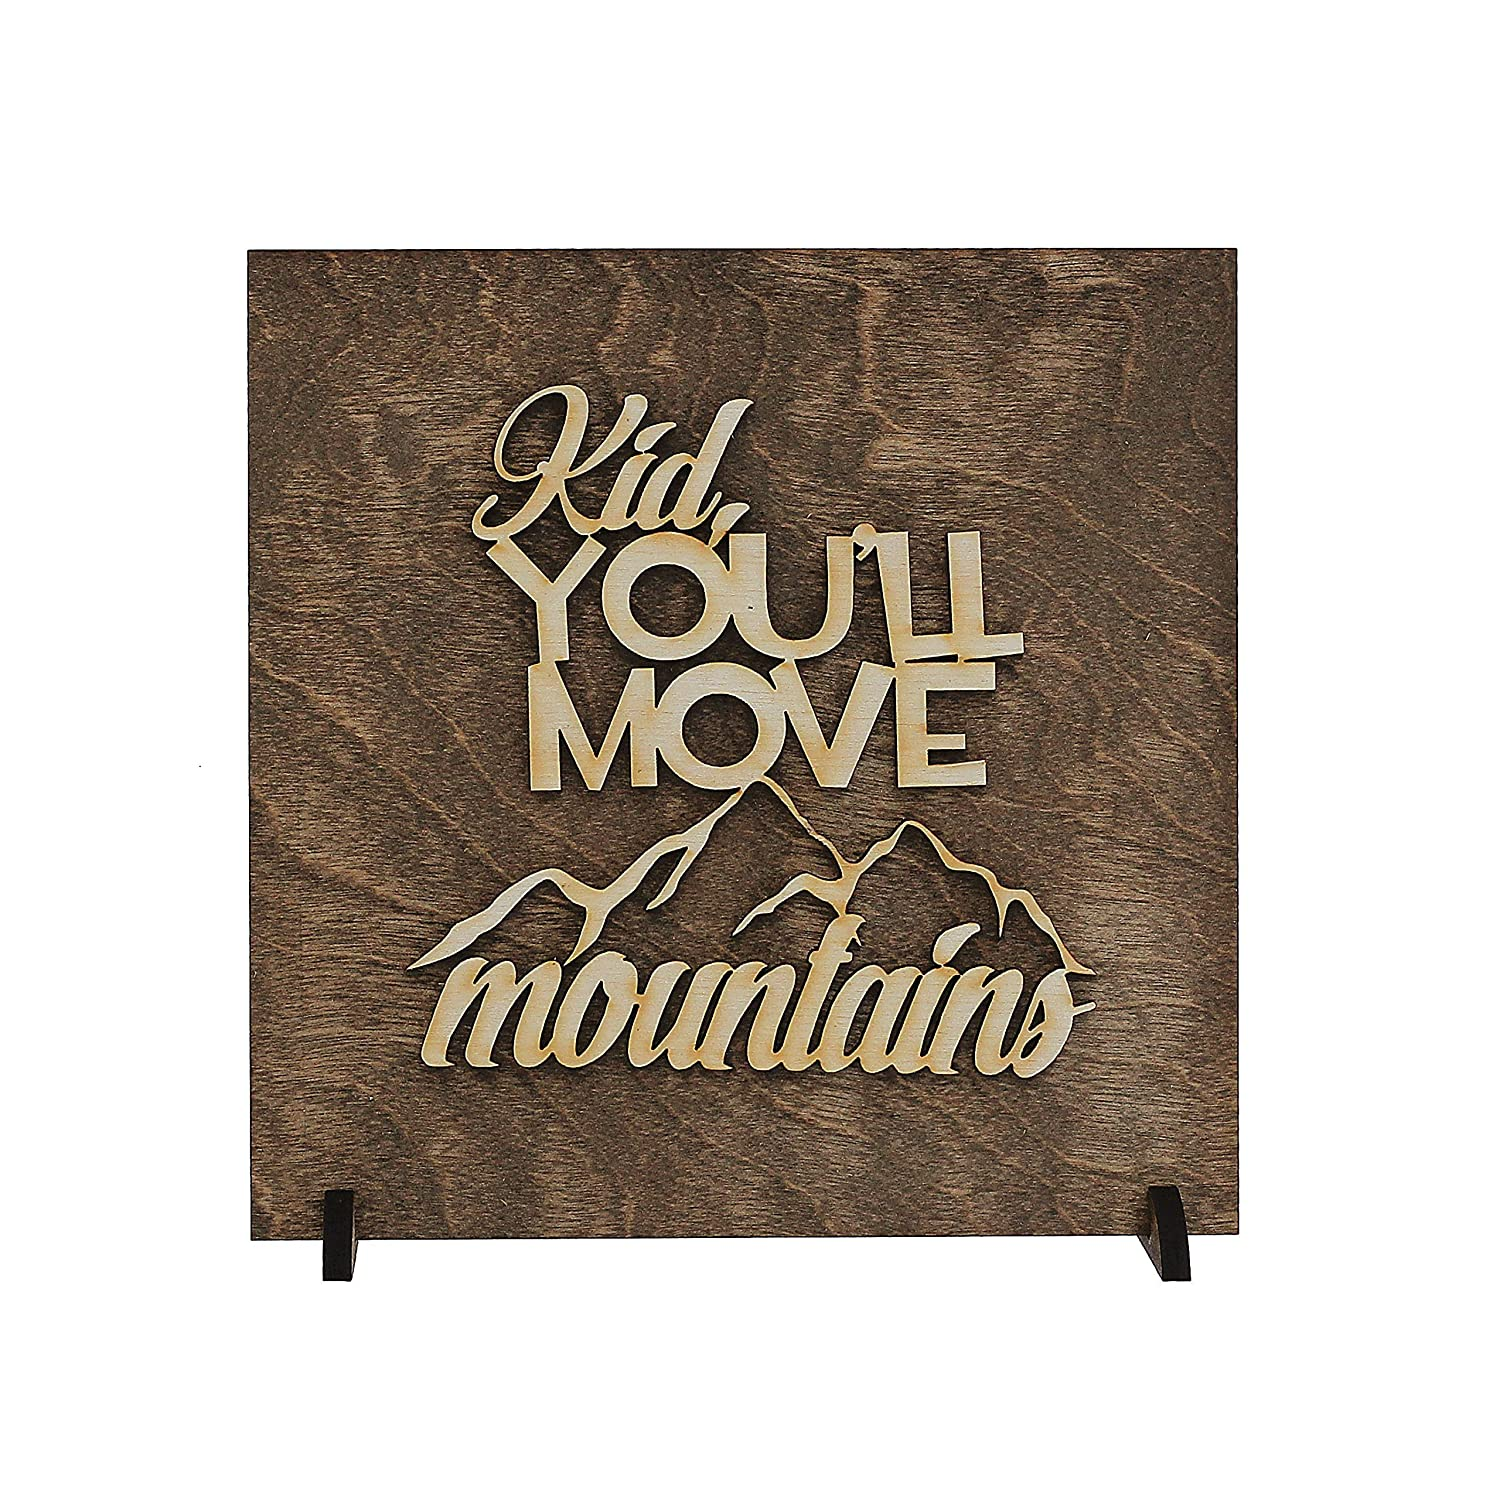 MannMade Designs Kid Great Nursery or Childs Room Decor! Youll Move Mountains Wood Sign Home D/écor Wood Banner